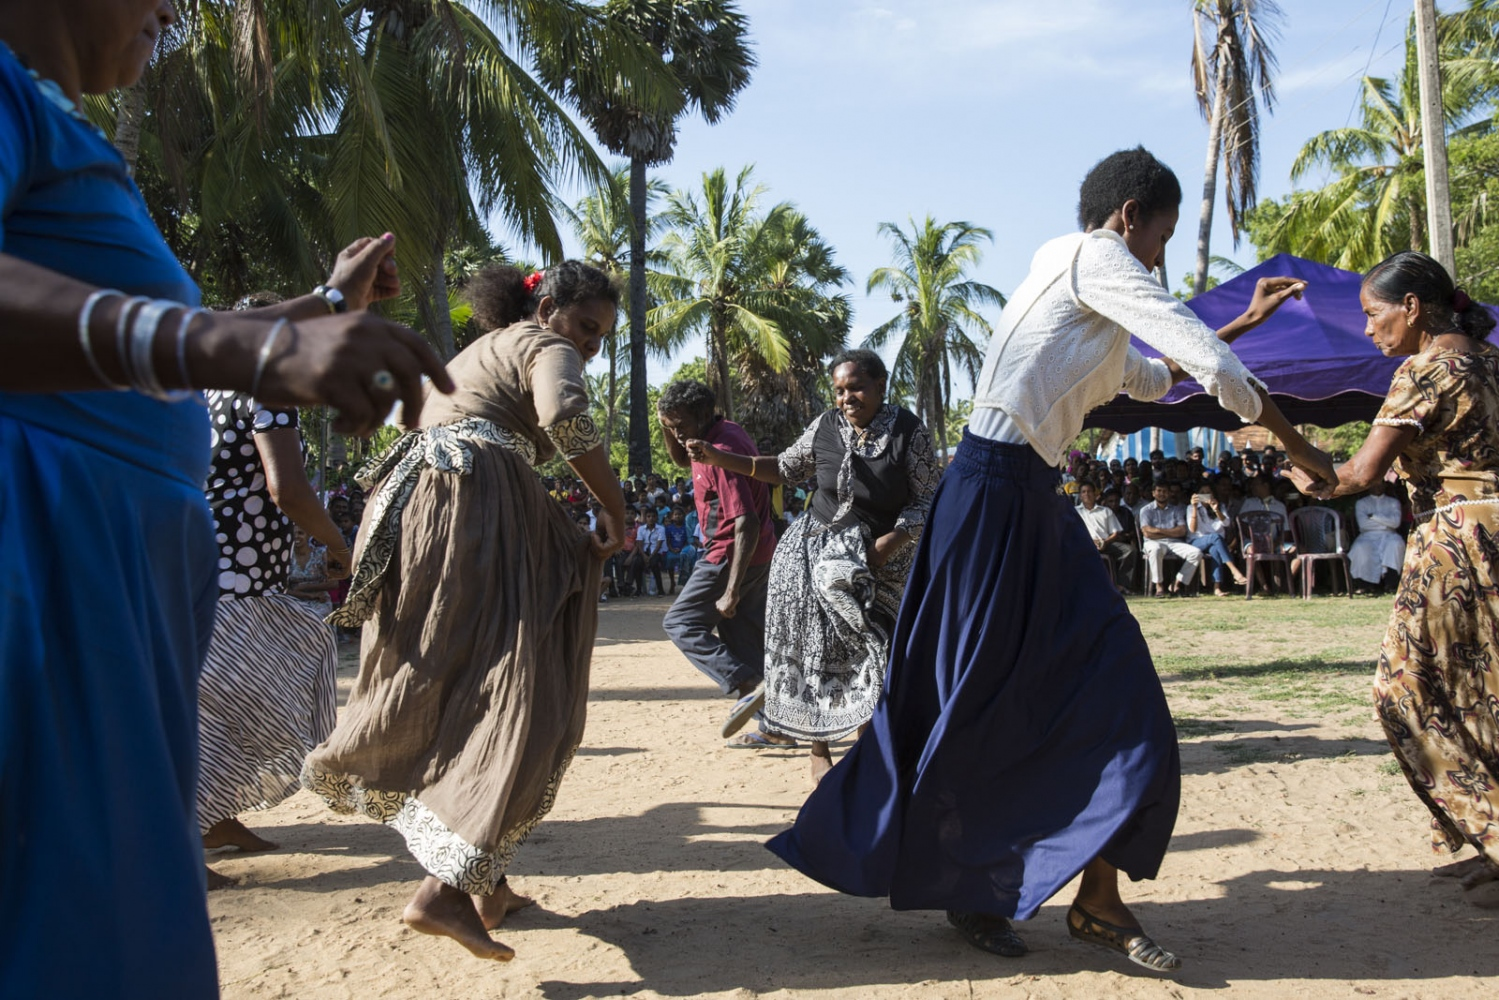 On September 24th 2017 the Afro-Sri Lankan community celebrated their 500 year anniversary since the first African ancestors were brought to Sri Lanka by the Portuguese. The event included acting on the stage and singing and dancing watched by hundreds of local people from Puttalam town. Puttalam, Sri Lanka - September 2017